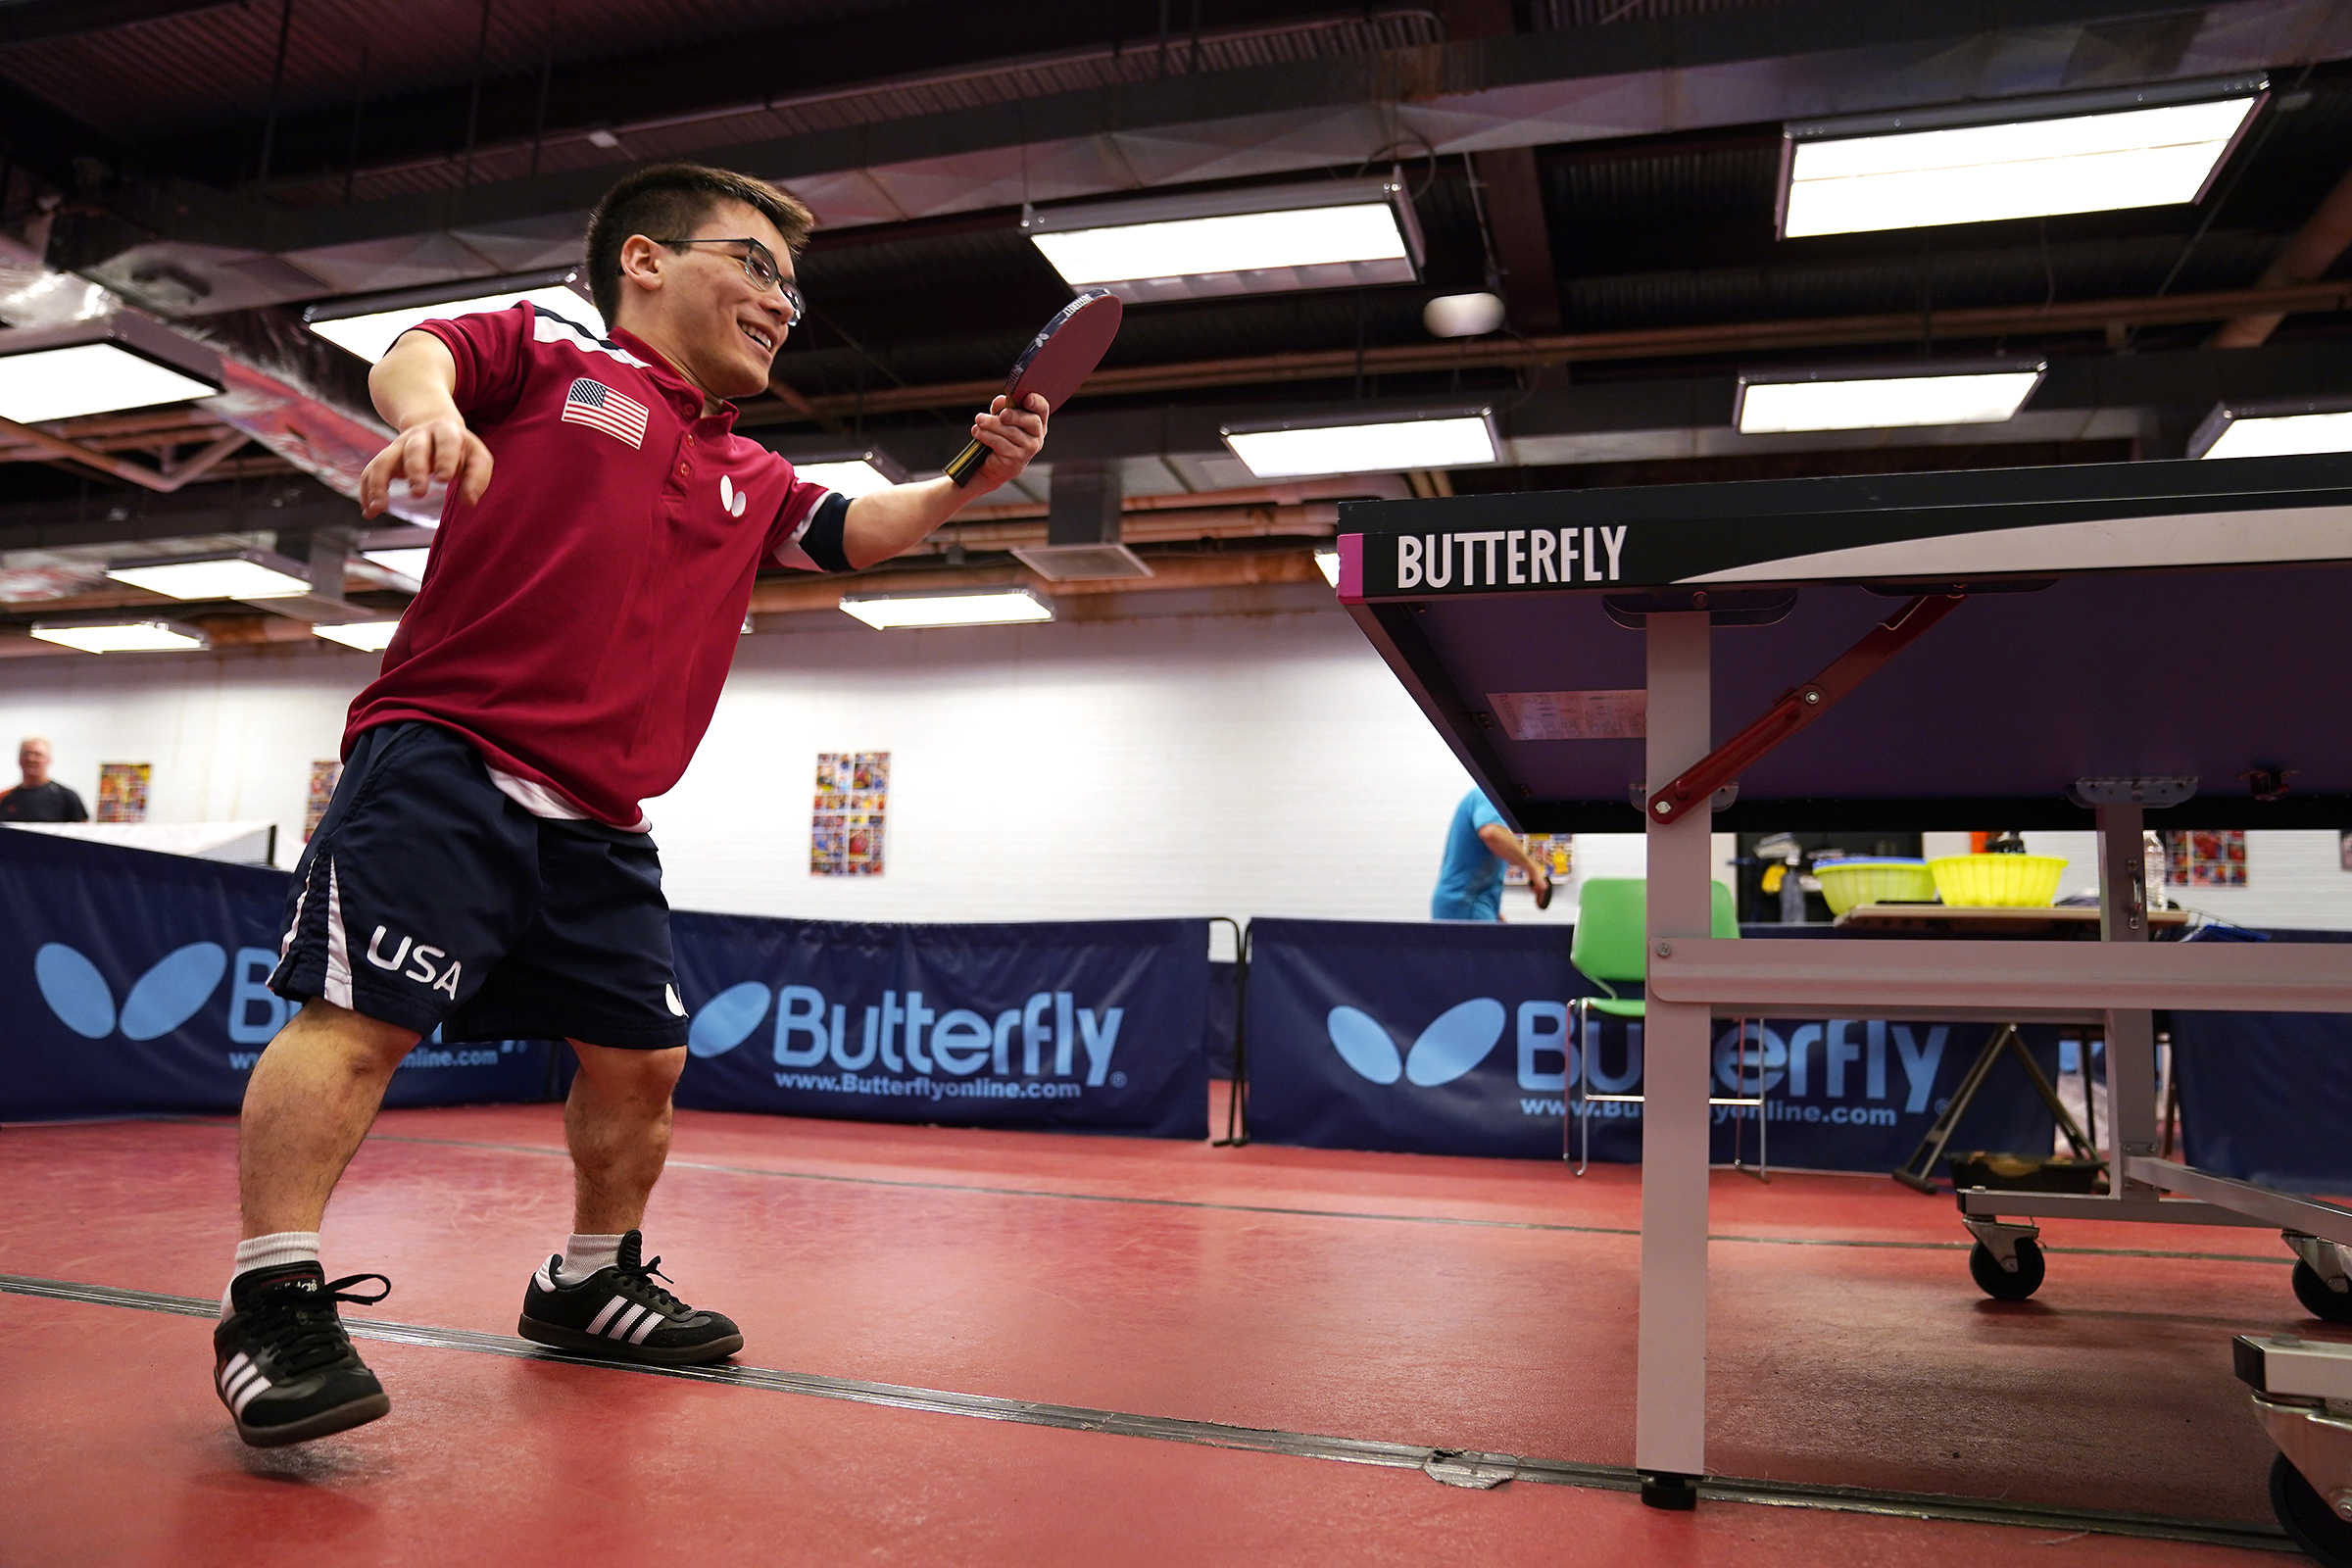 Ian Seidenfeld trained by helping his father with table tennis lessons at the Table Tennis Minnesota Training Center in South St. Paul.